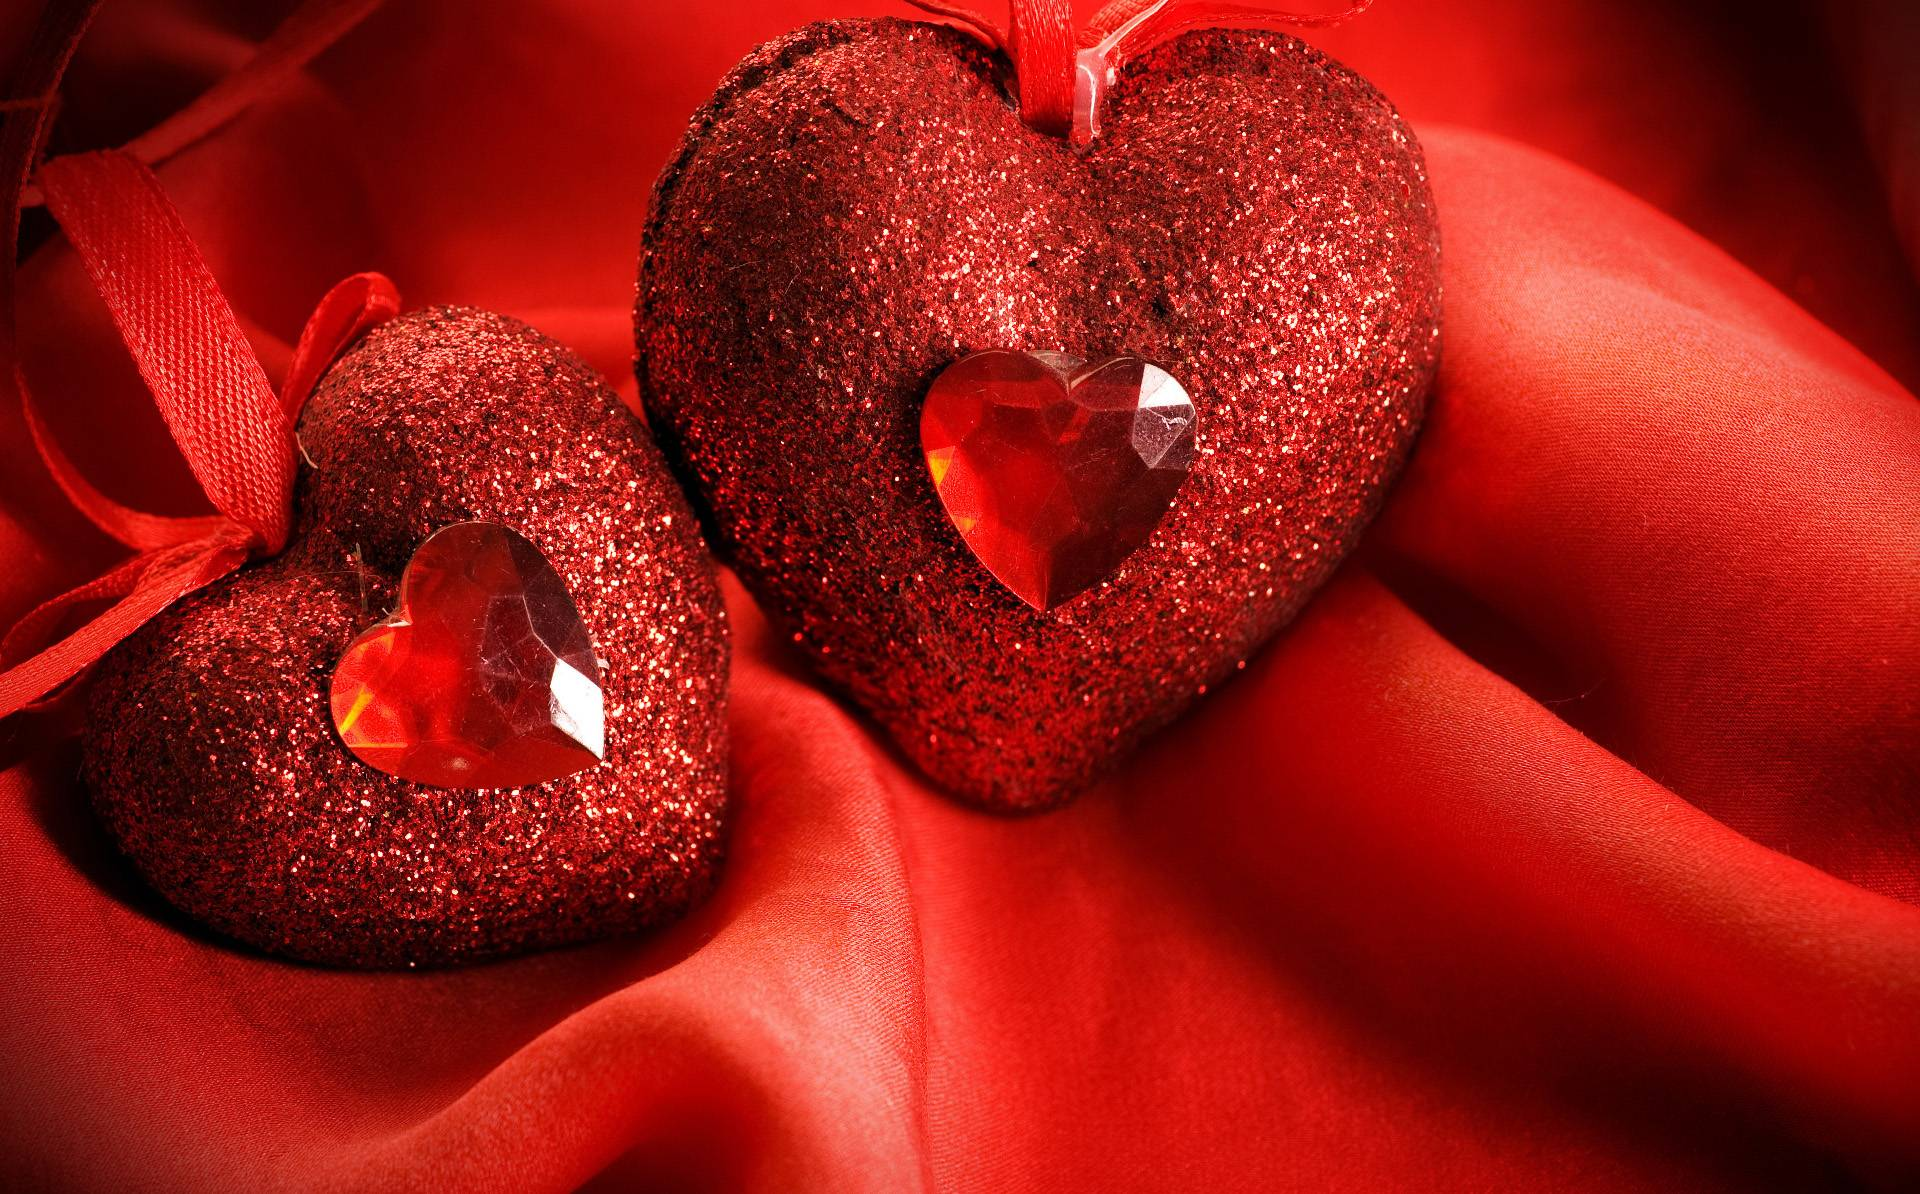 Very Beautiful Love Hd Wallpaper : Love Heart Wallpapers HD - Wallpaper cave